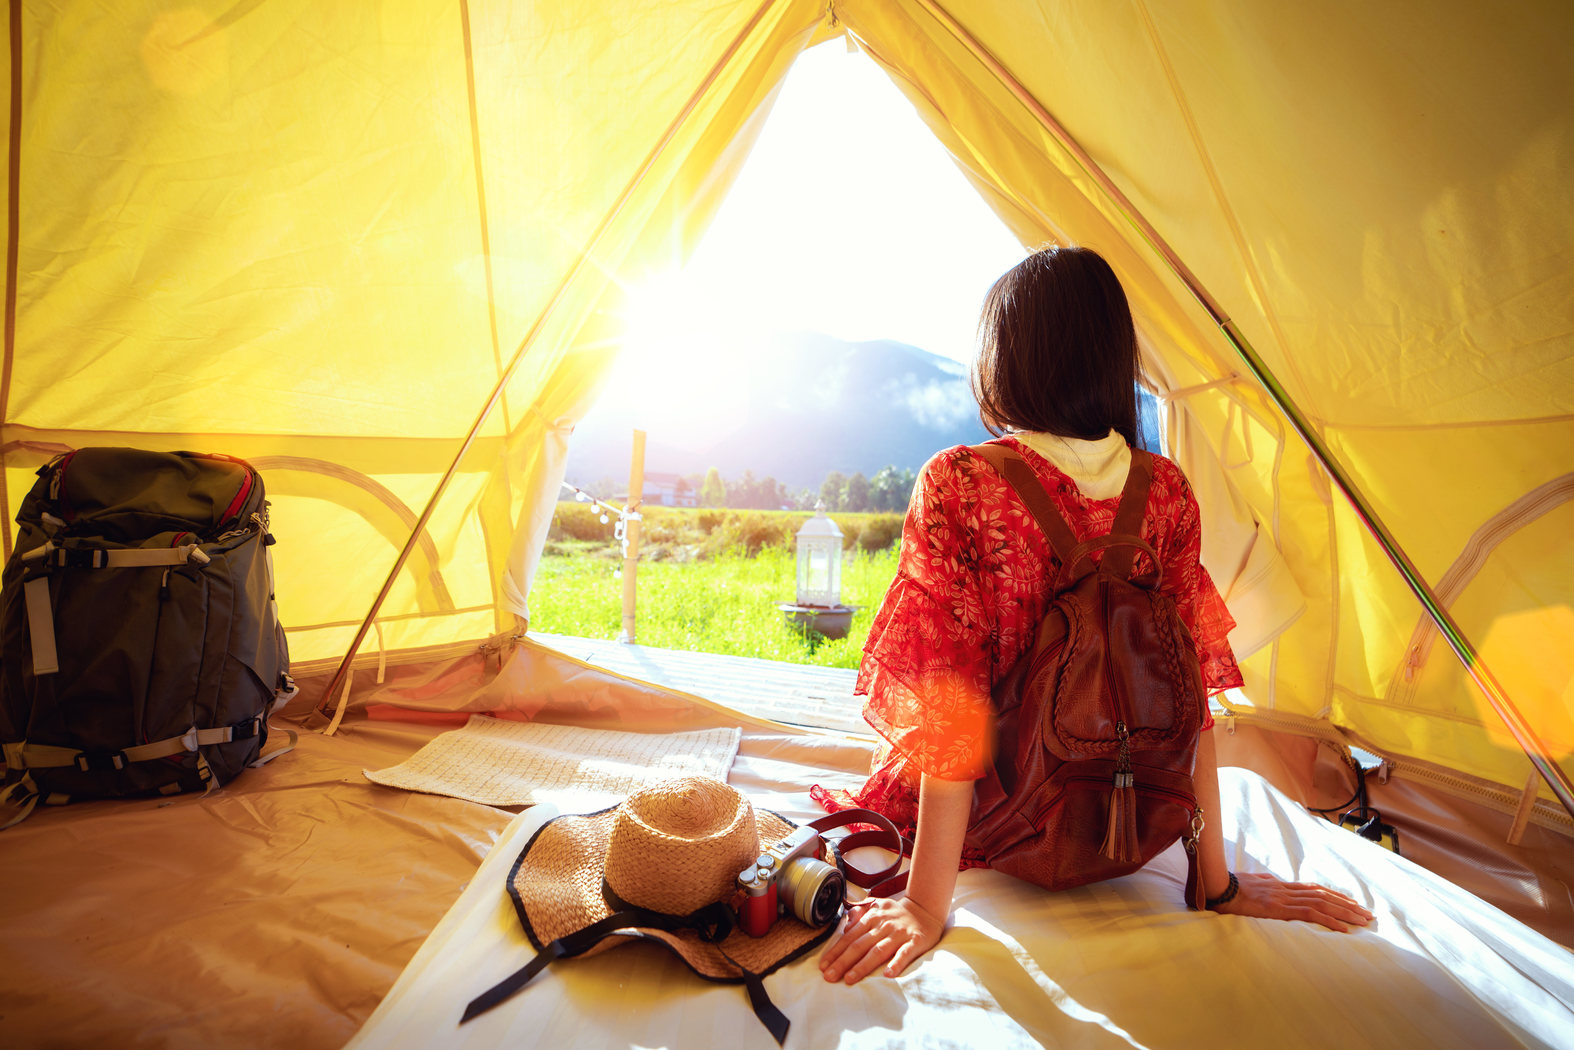 The Basic things You Need to Know About Choosing the Right Sleeping Bag